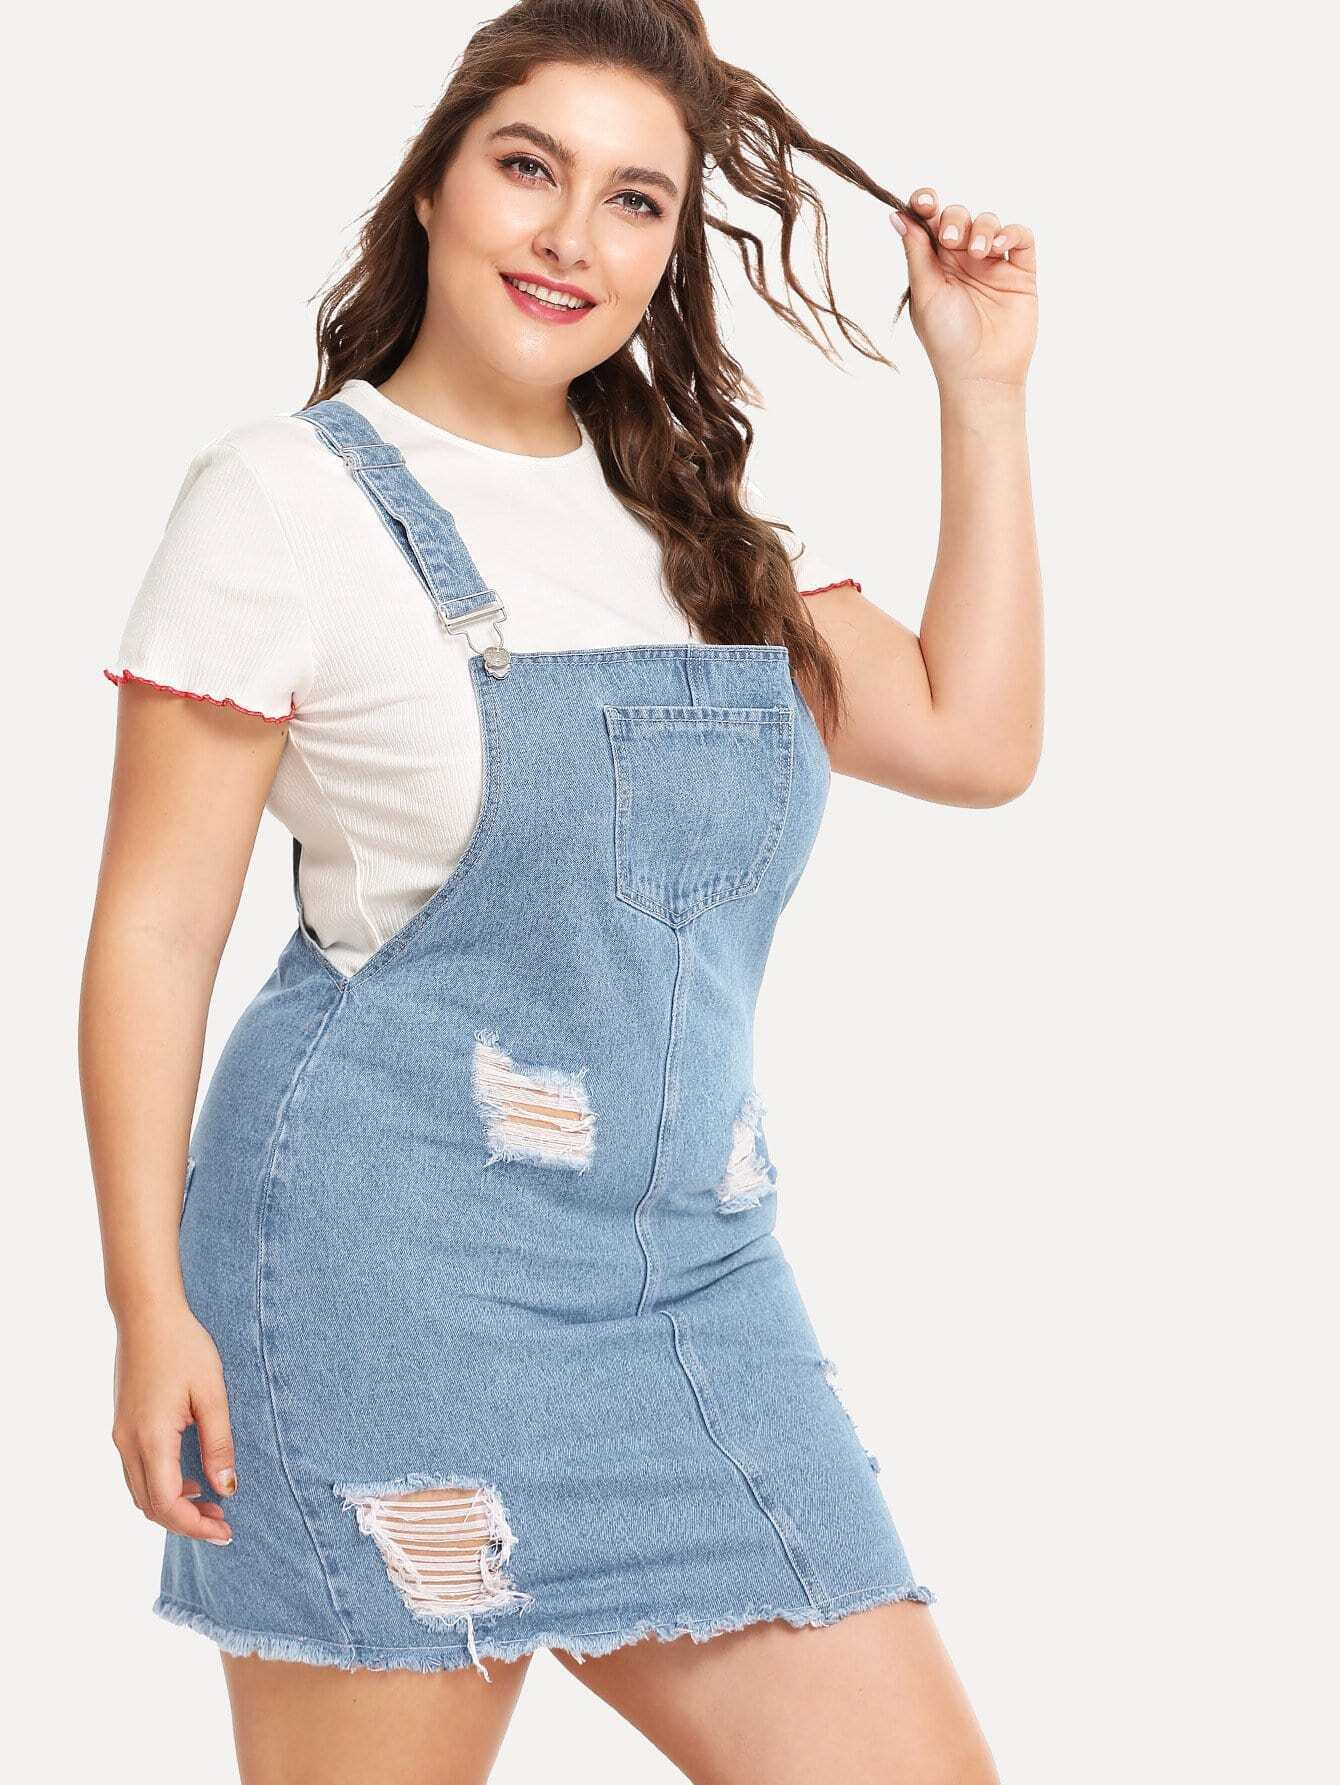 Pocket Front Distressed Denim Overall Dress pocket front shirt dress